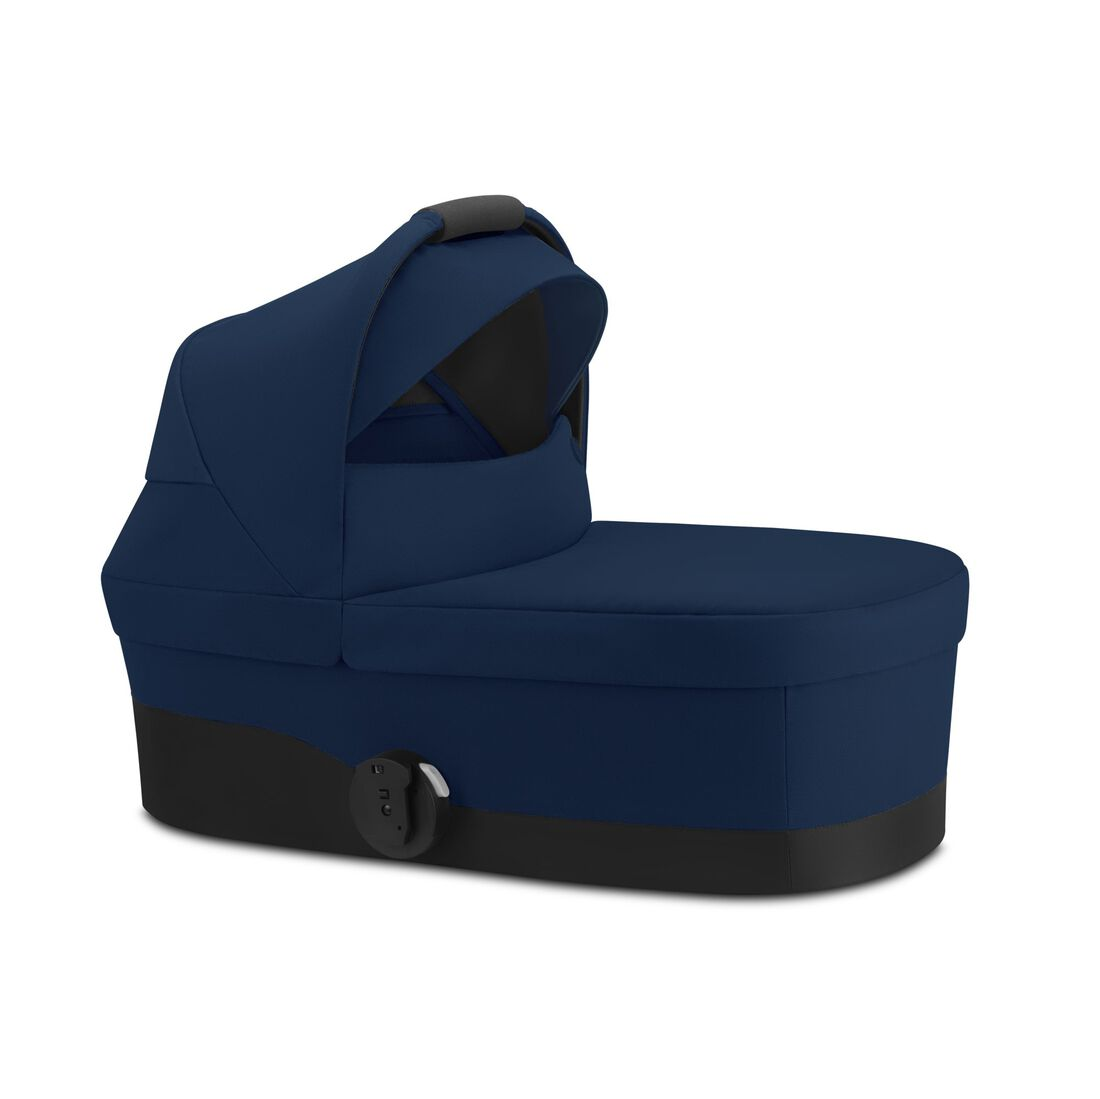 CYBEX Cot S - Navy Blue in Navy Blue large image number 2